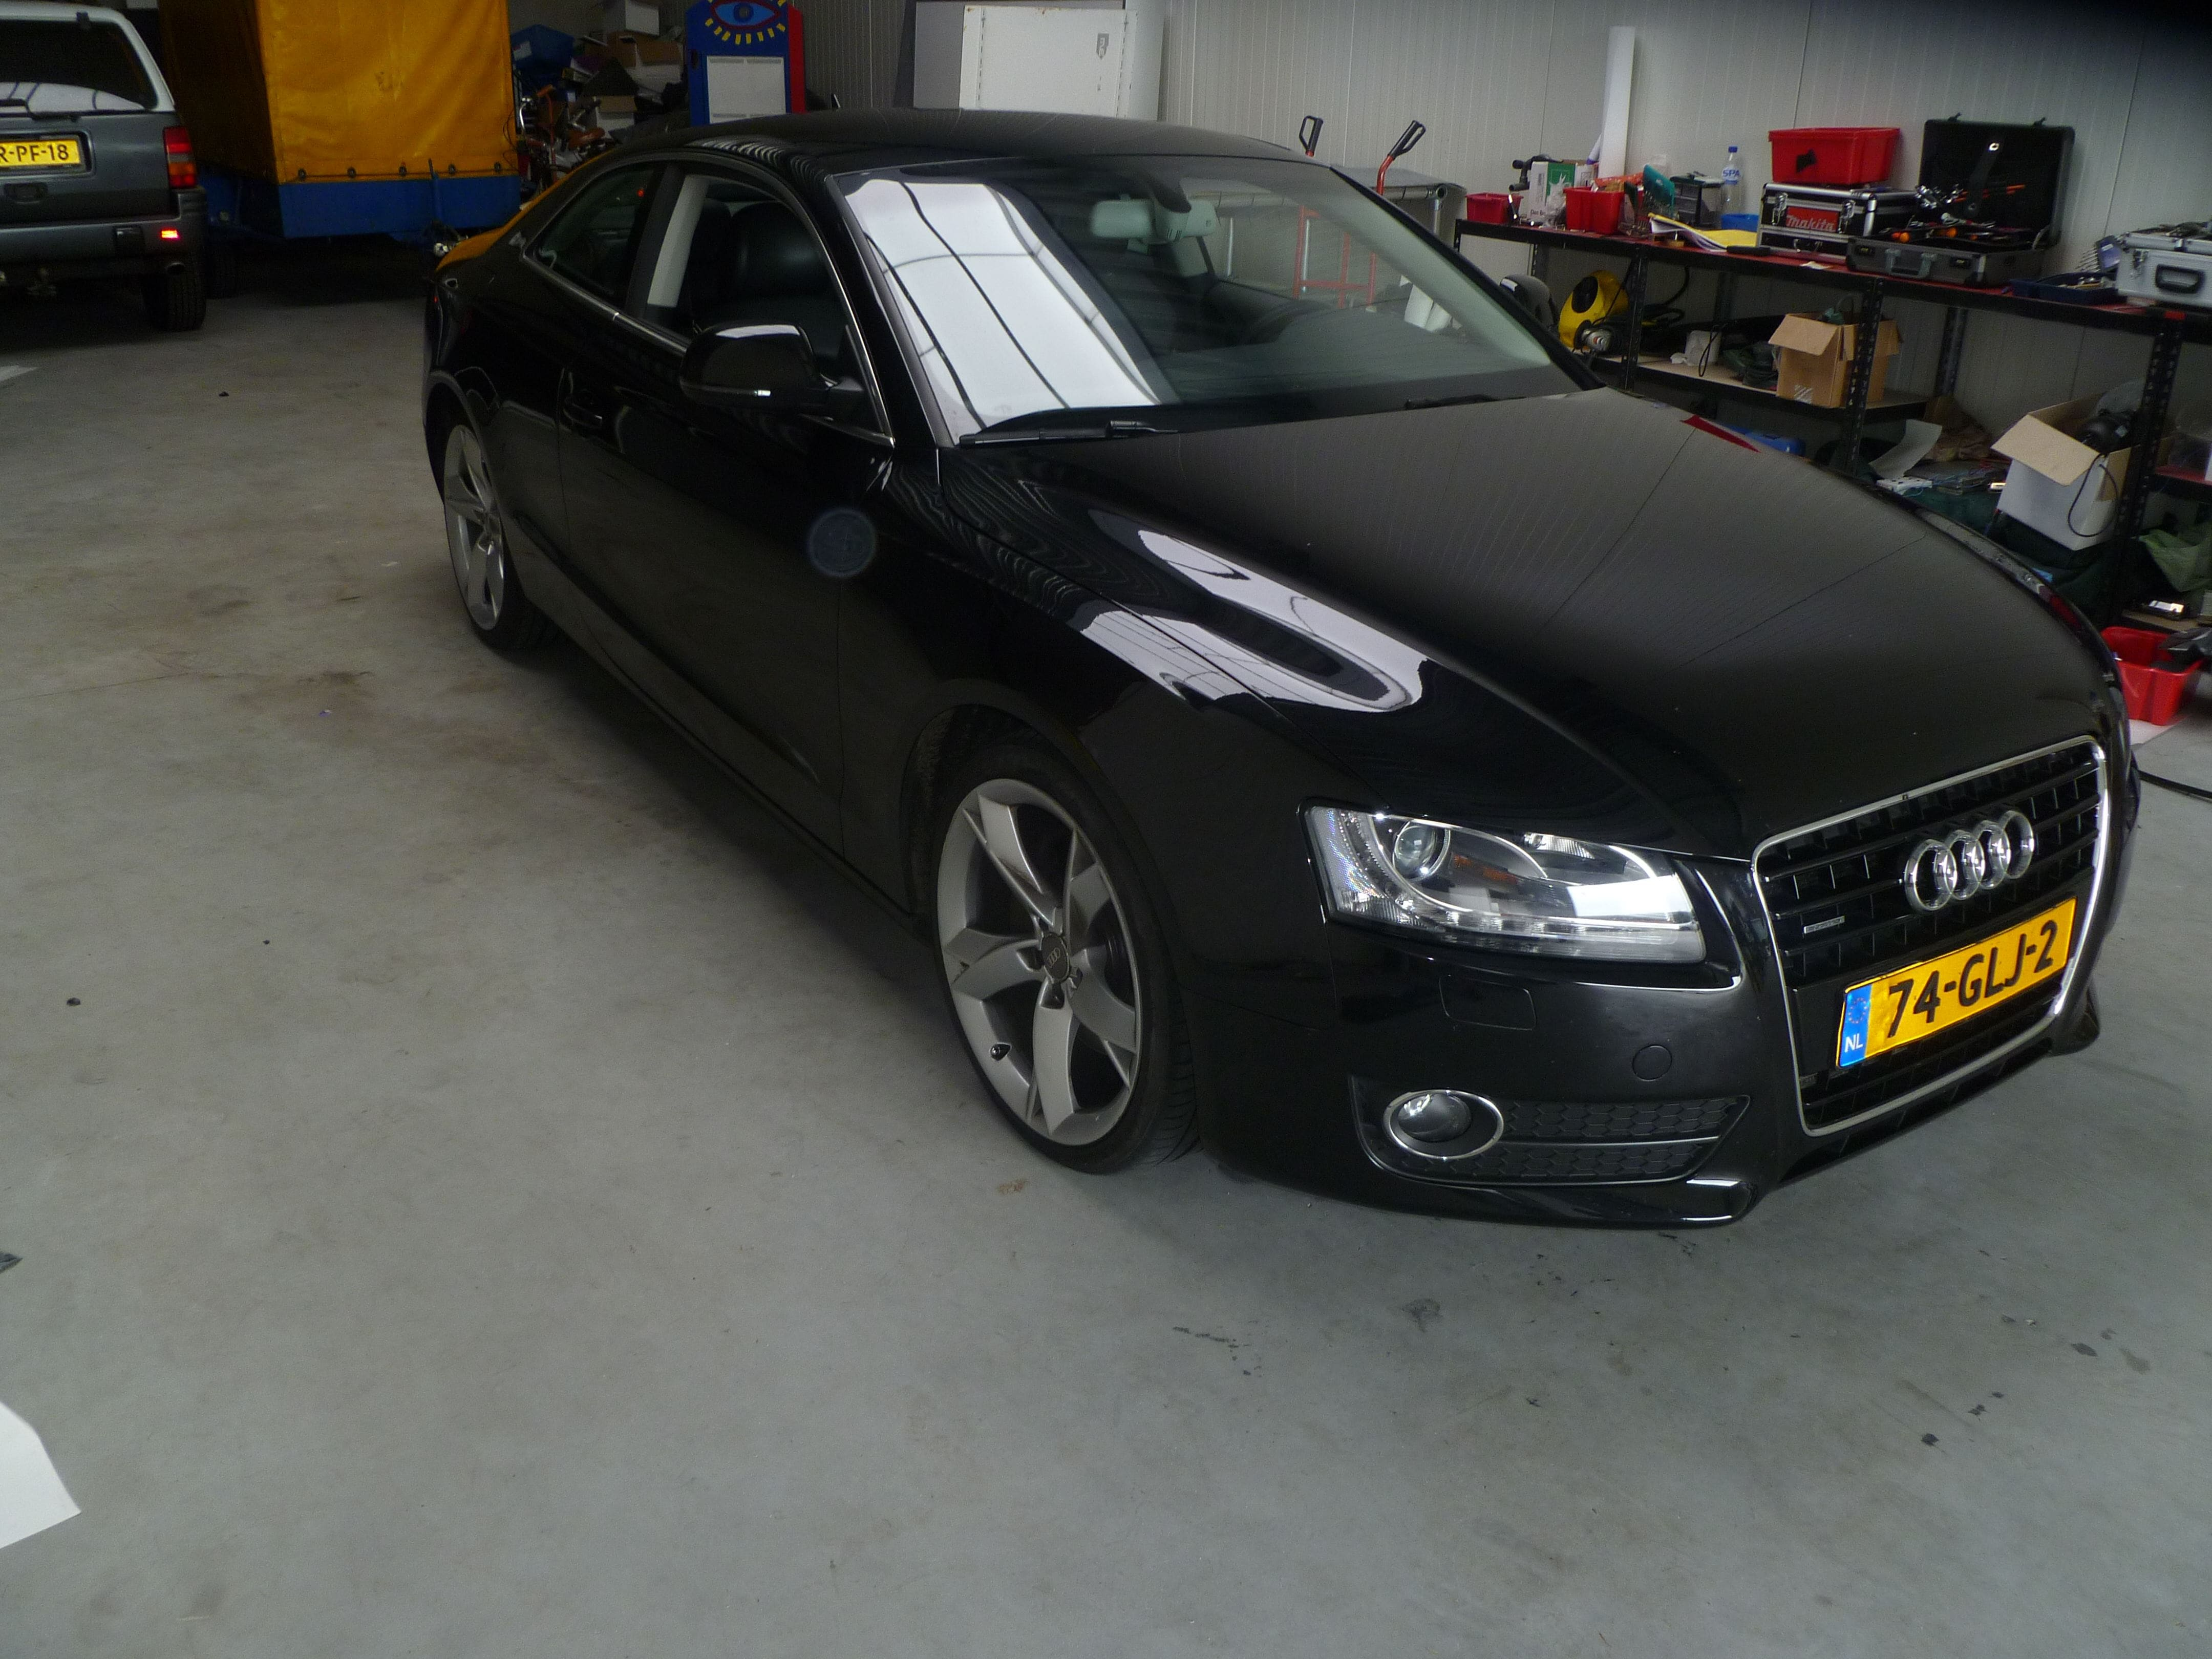 Audi A5 coupe met Metallic Witte Wrap, Carwrapping door Wrapmyride.nu Foto-nr:4671, ©2020